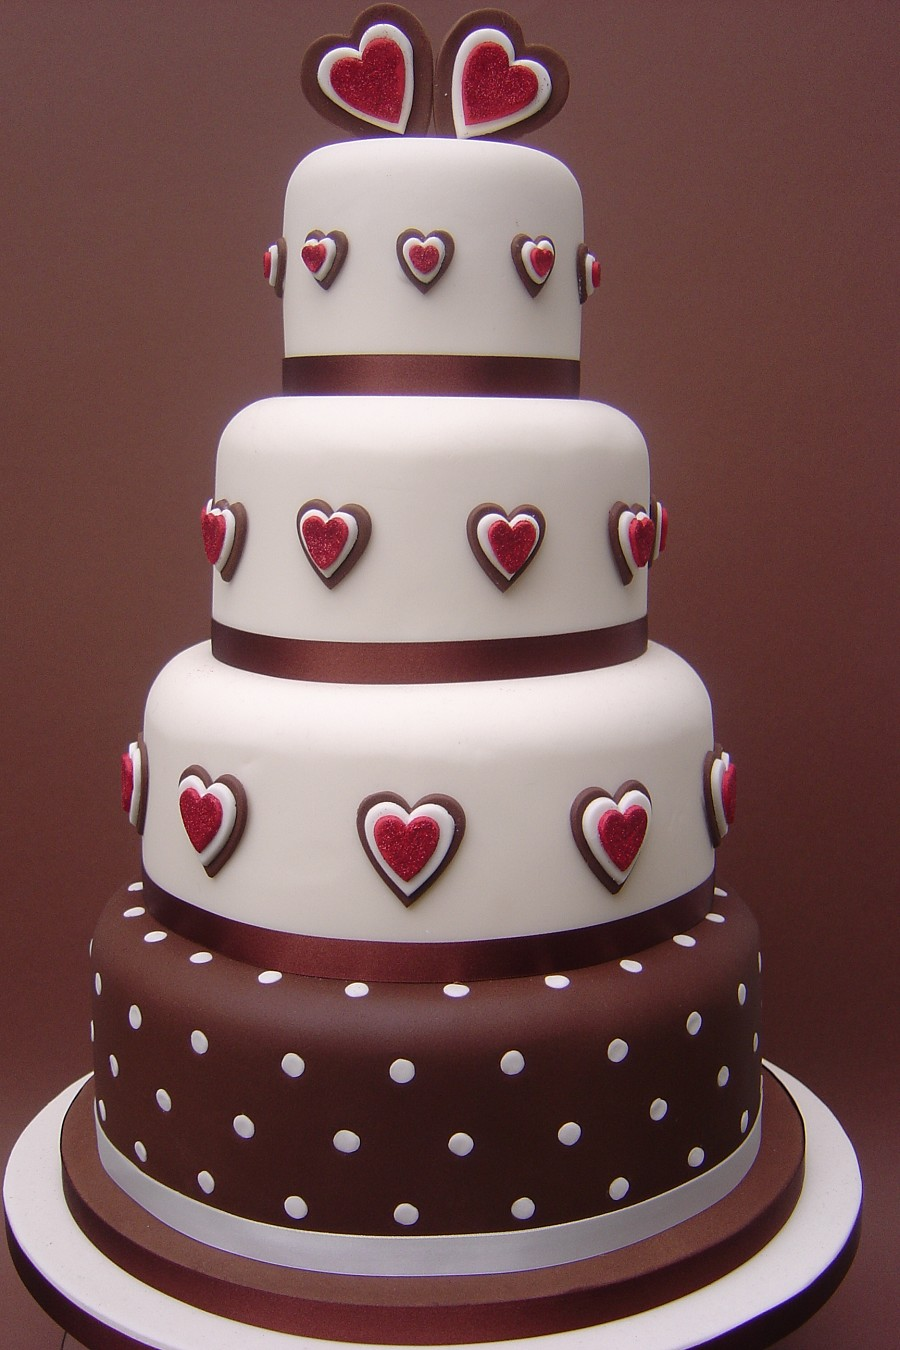 Wedding Anniversary Cake Design Ideas : 50th Wedding Anniversary Cake Ideas